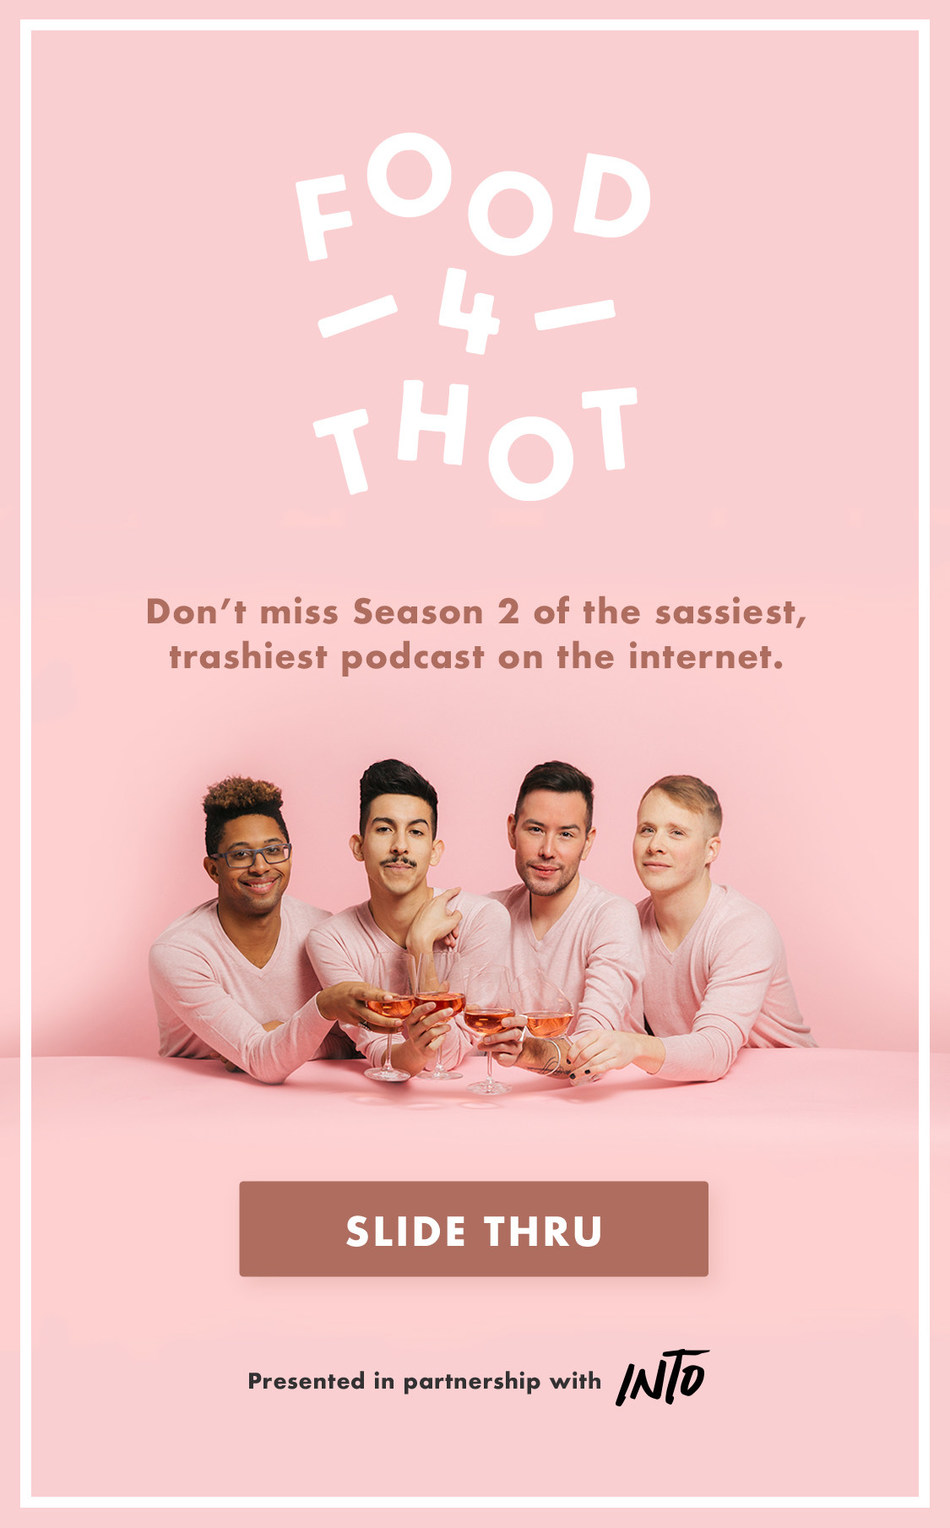 Don't miss Season 2 of the sassiest, trashiest podcast on the internet in partnership with INTO.